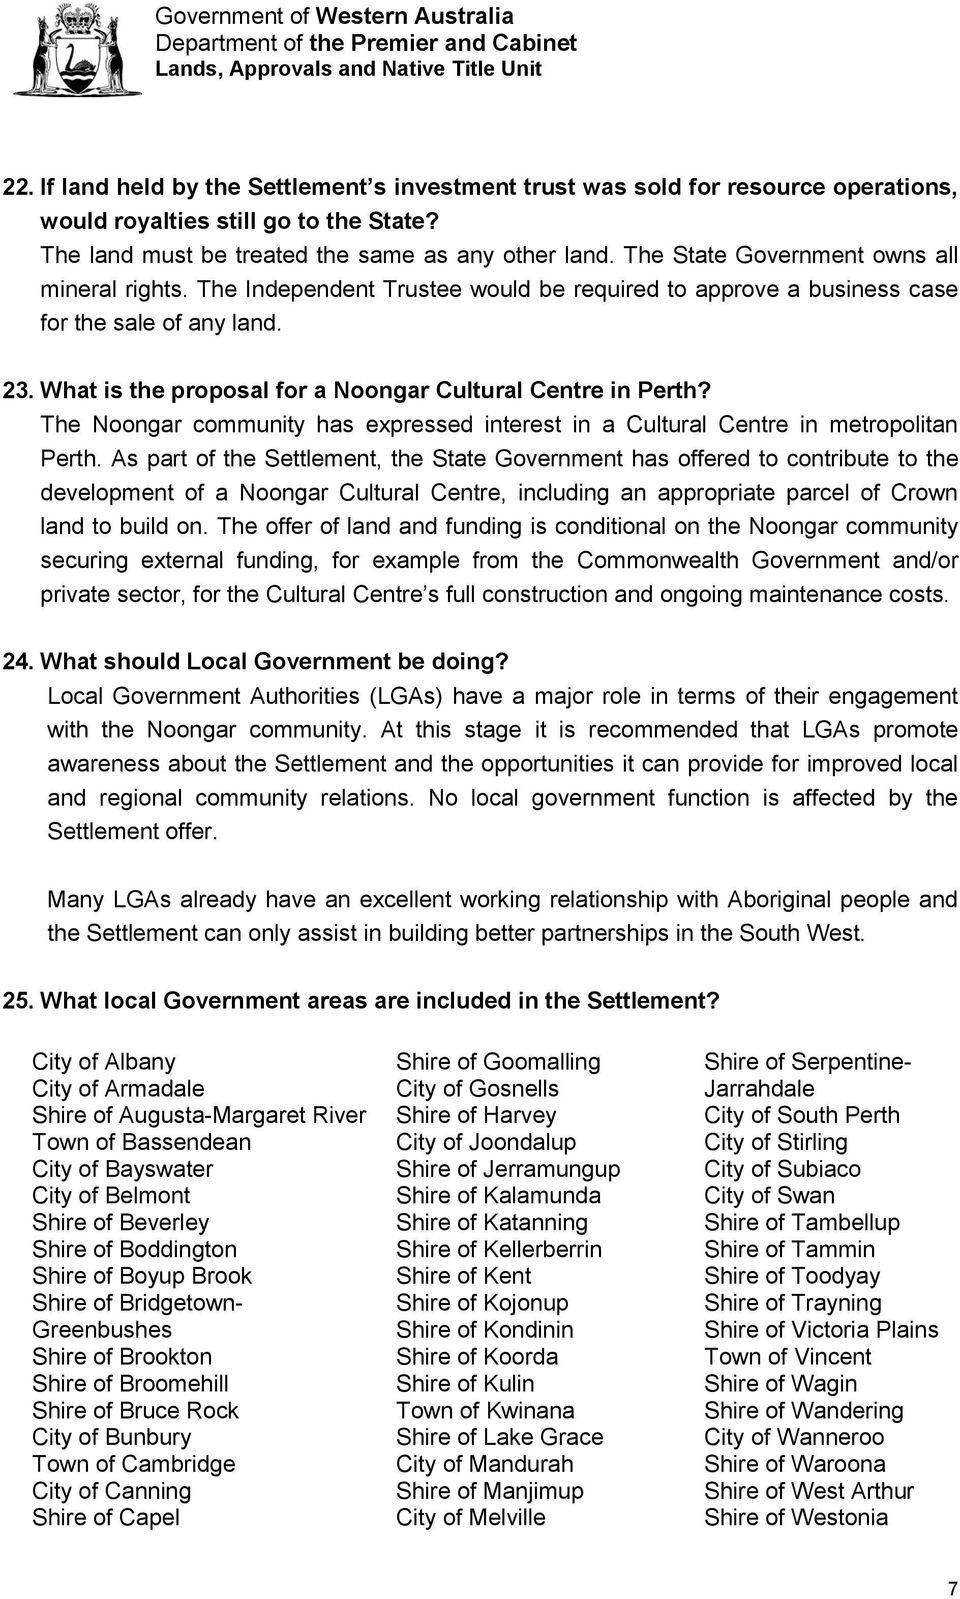 What is the proposal for a Noongar Cultural Centre in Perth? The Noongar community has expressed interest in a Cultural Centre in metropolitan Perth.